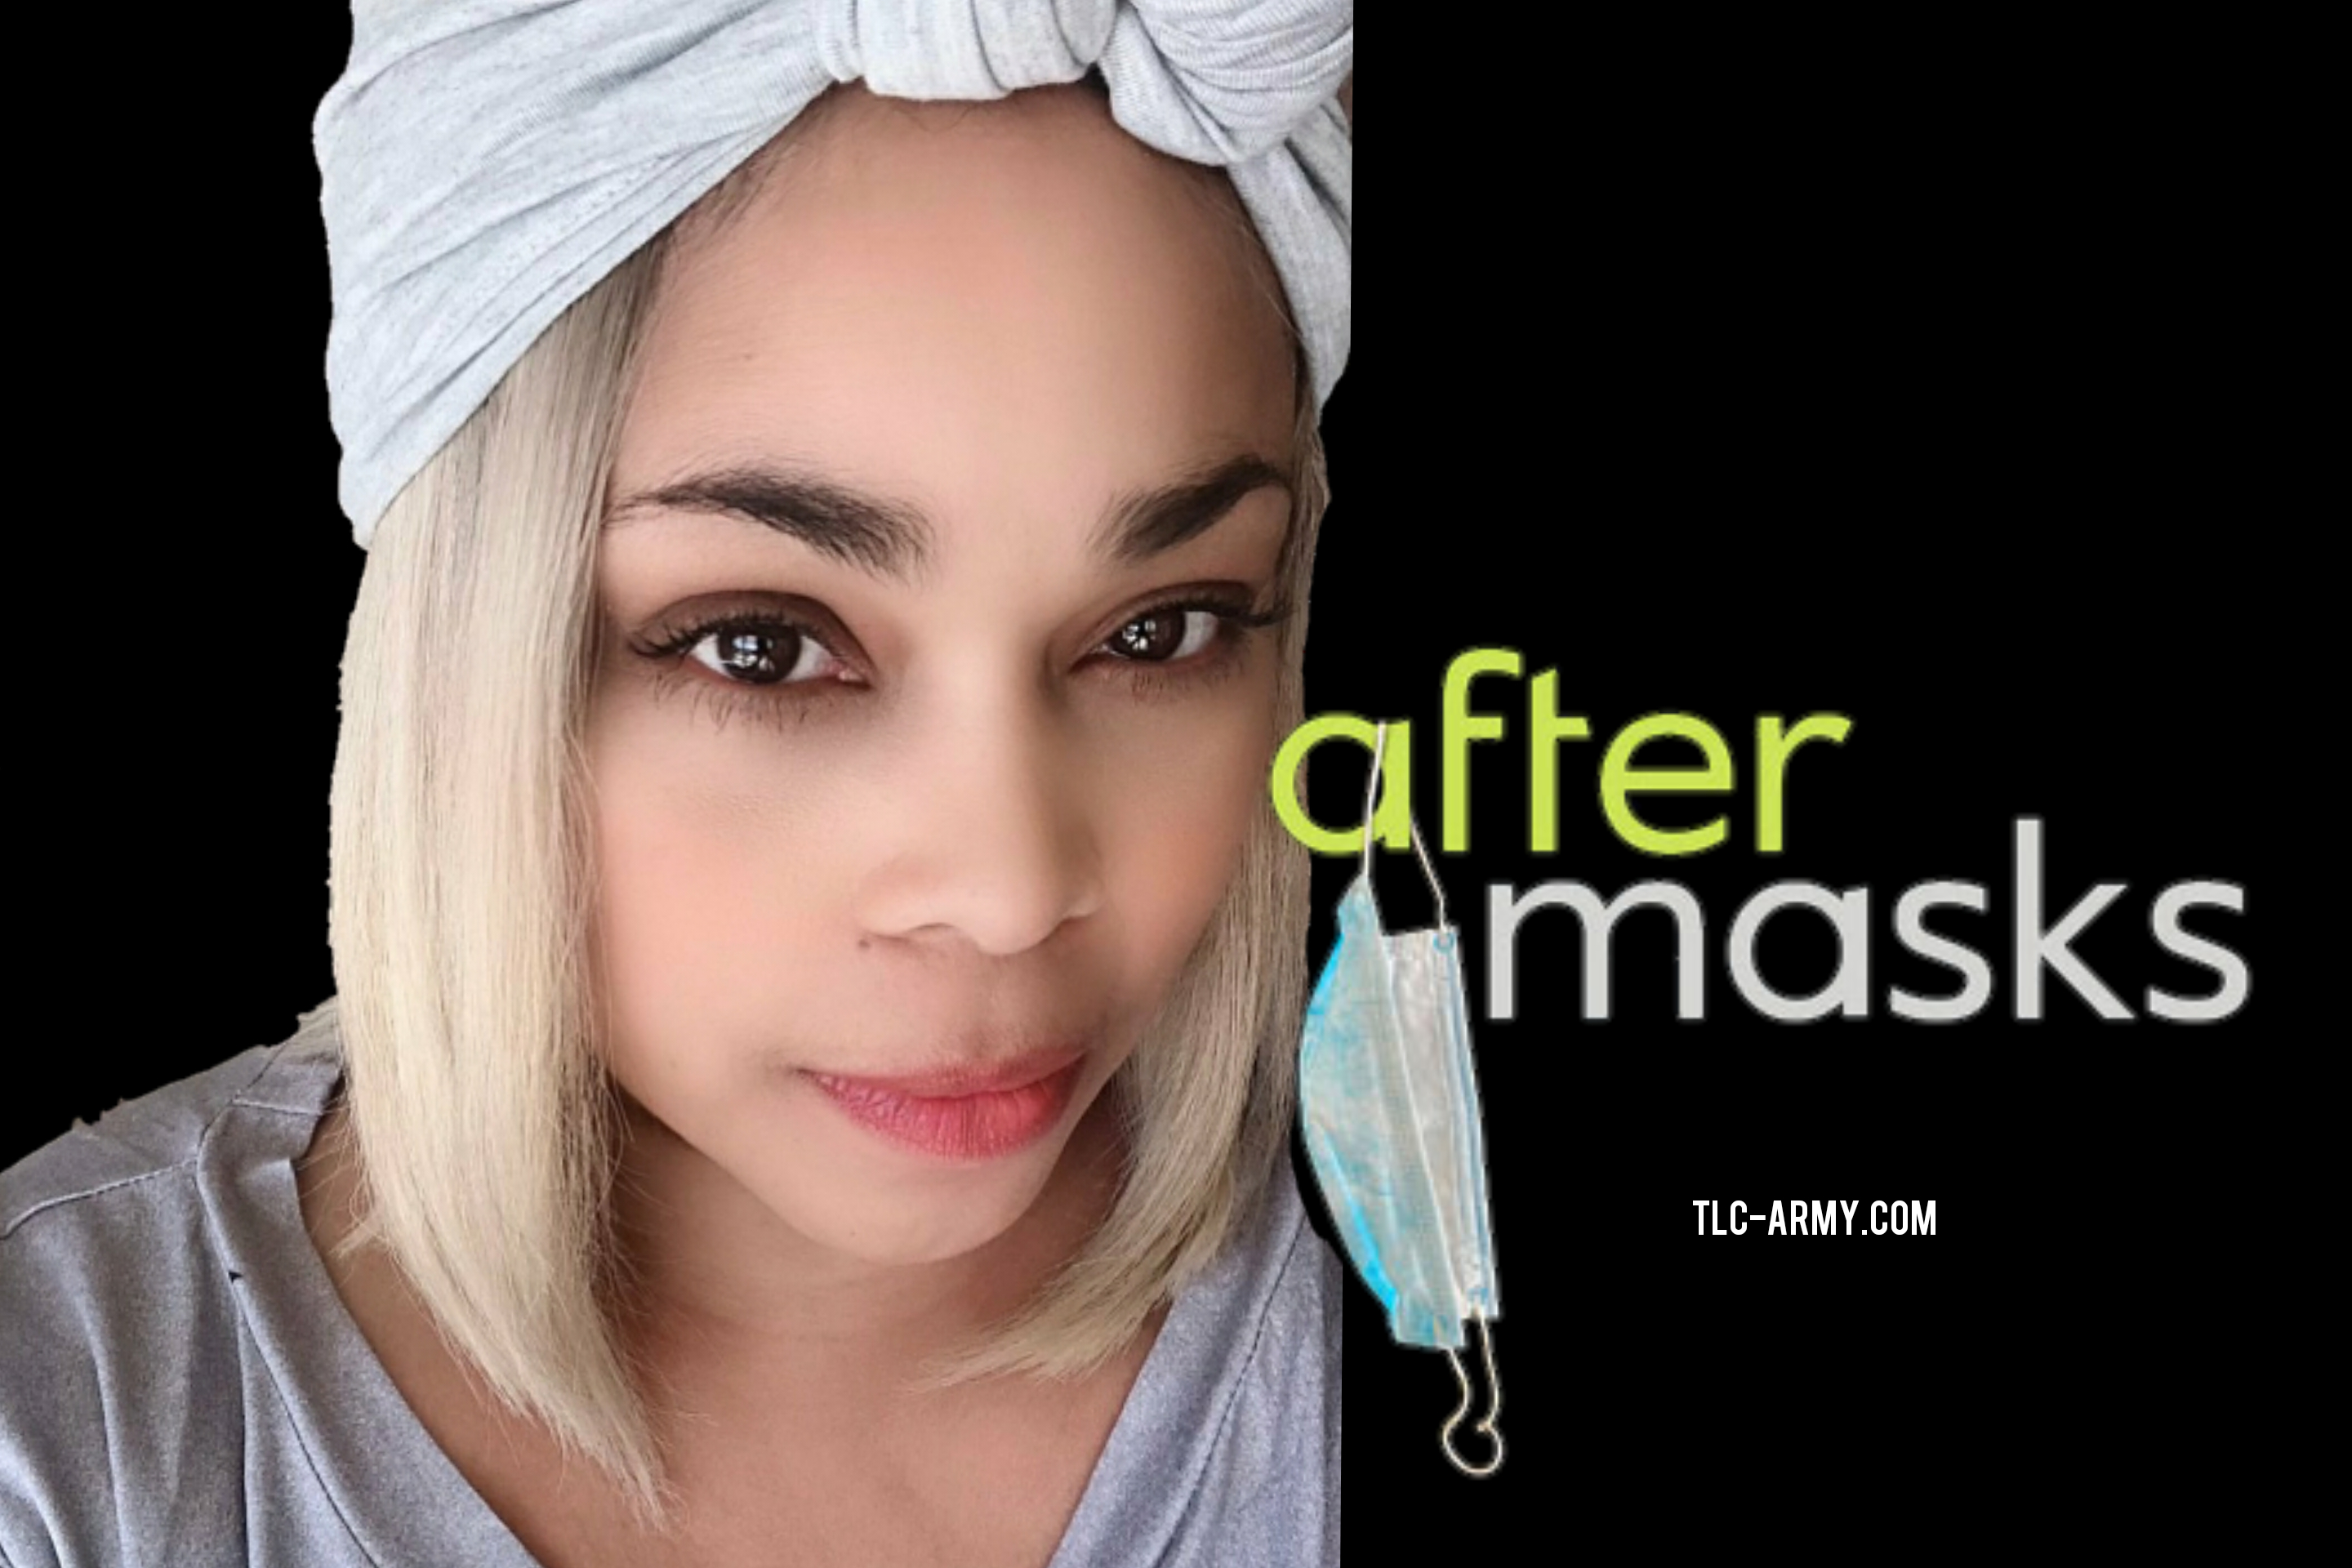 Pandemic Movie 'After Masks' Starring T-Boz Scheduled For Release In May 2021